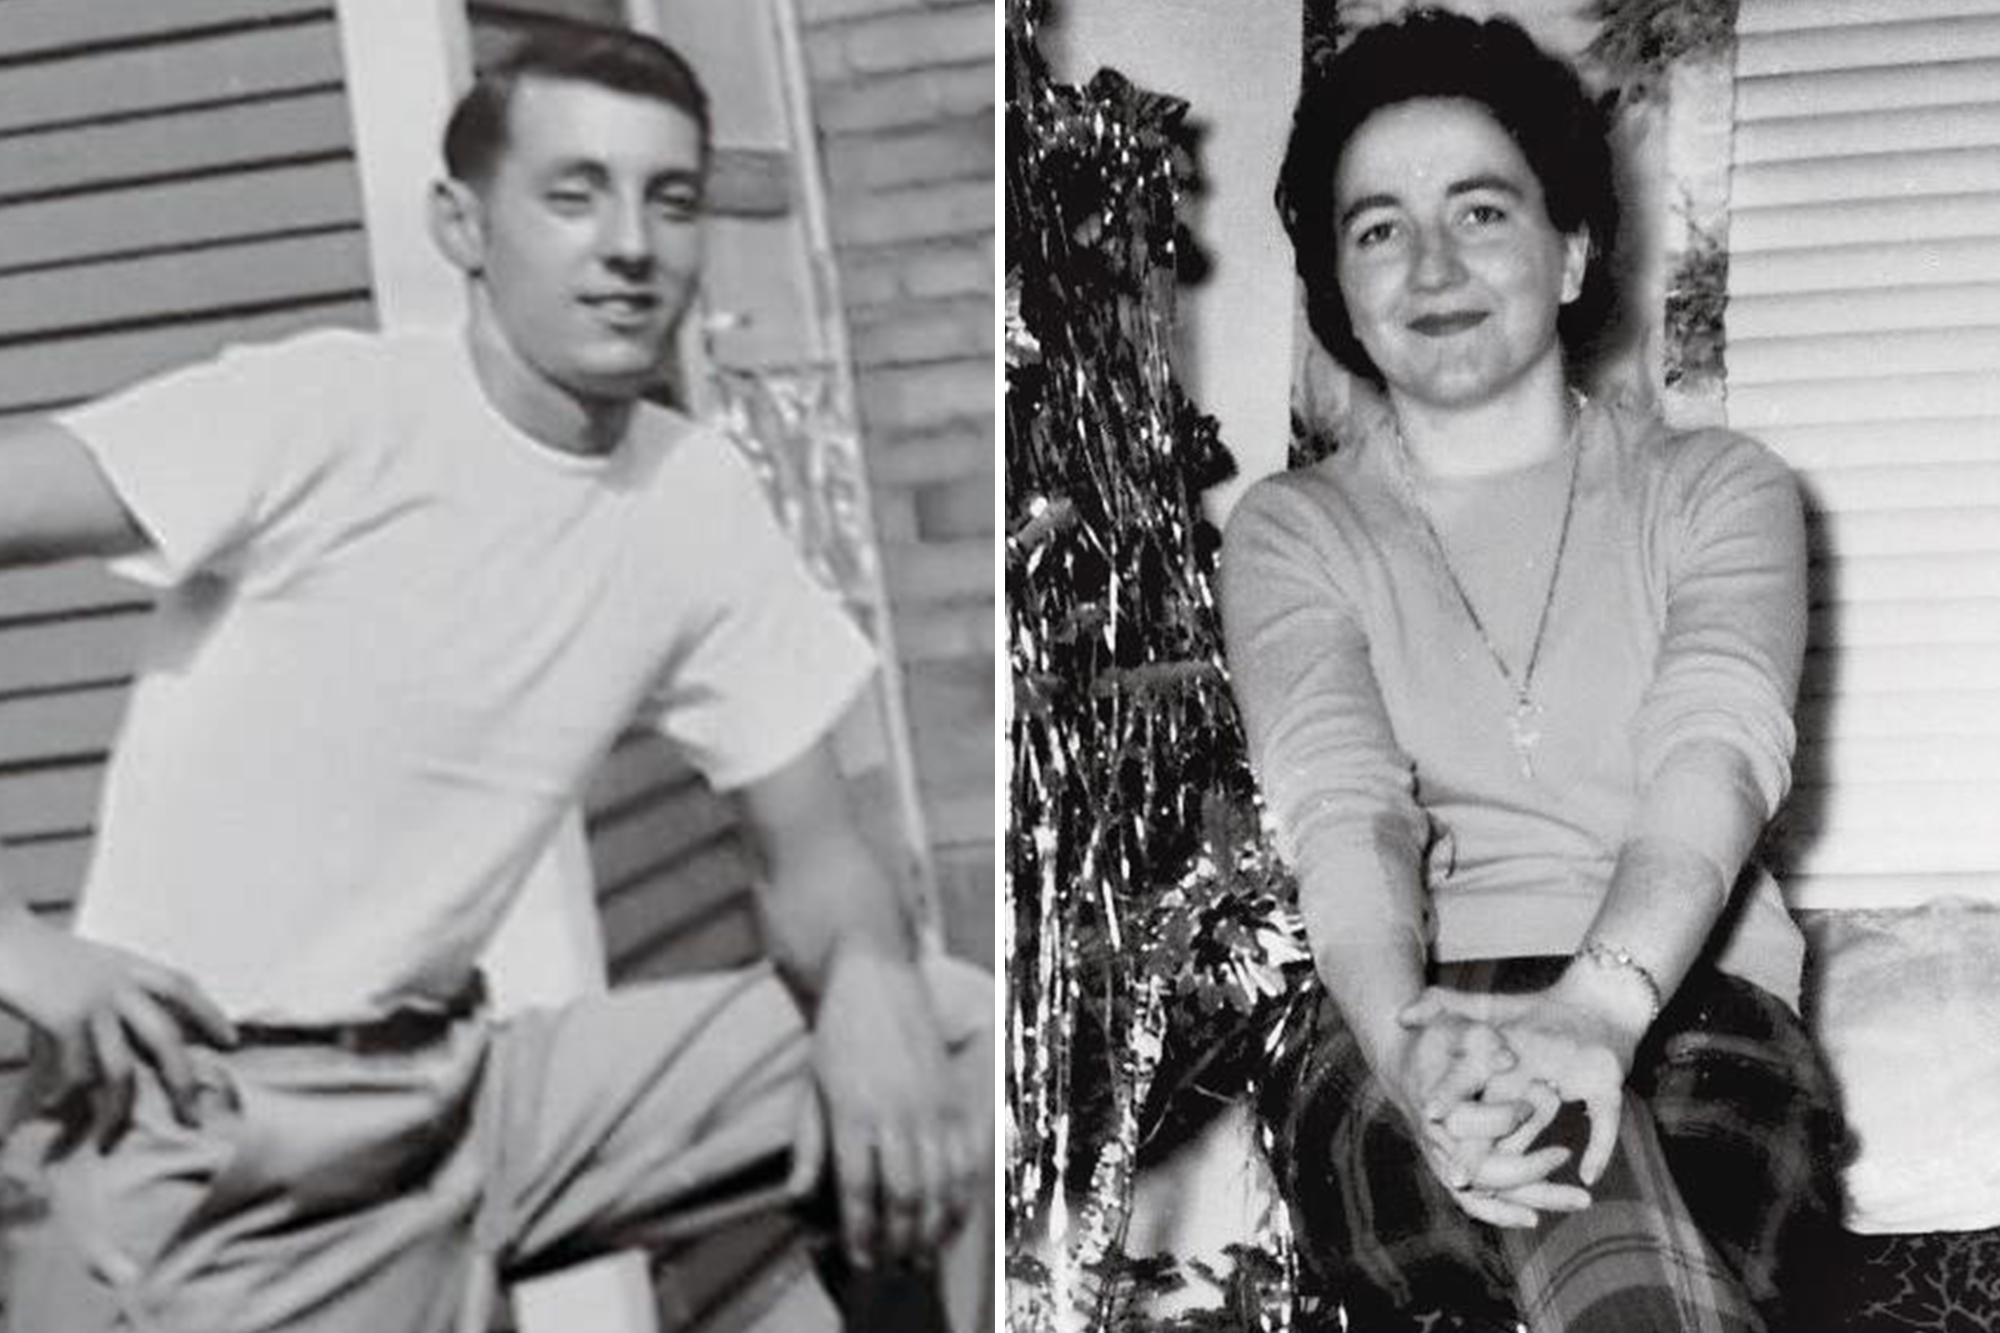 florence Harvey and fred Paul when they were young